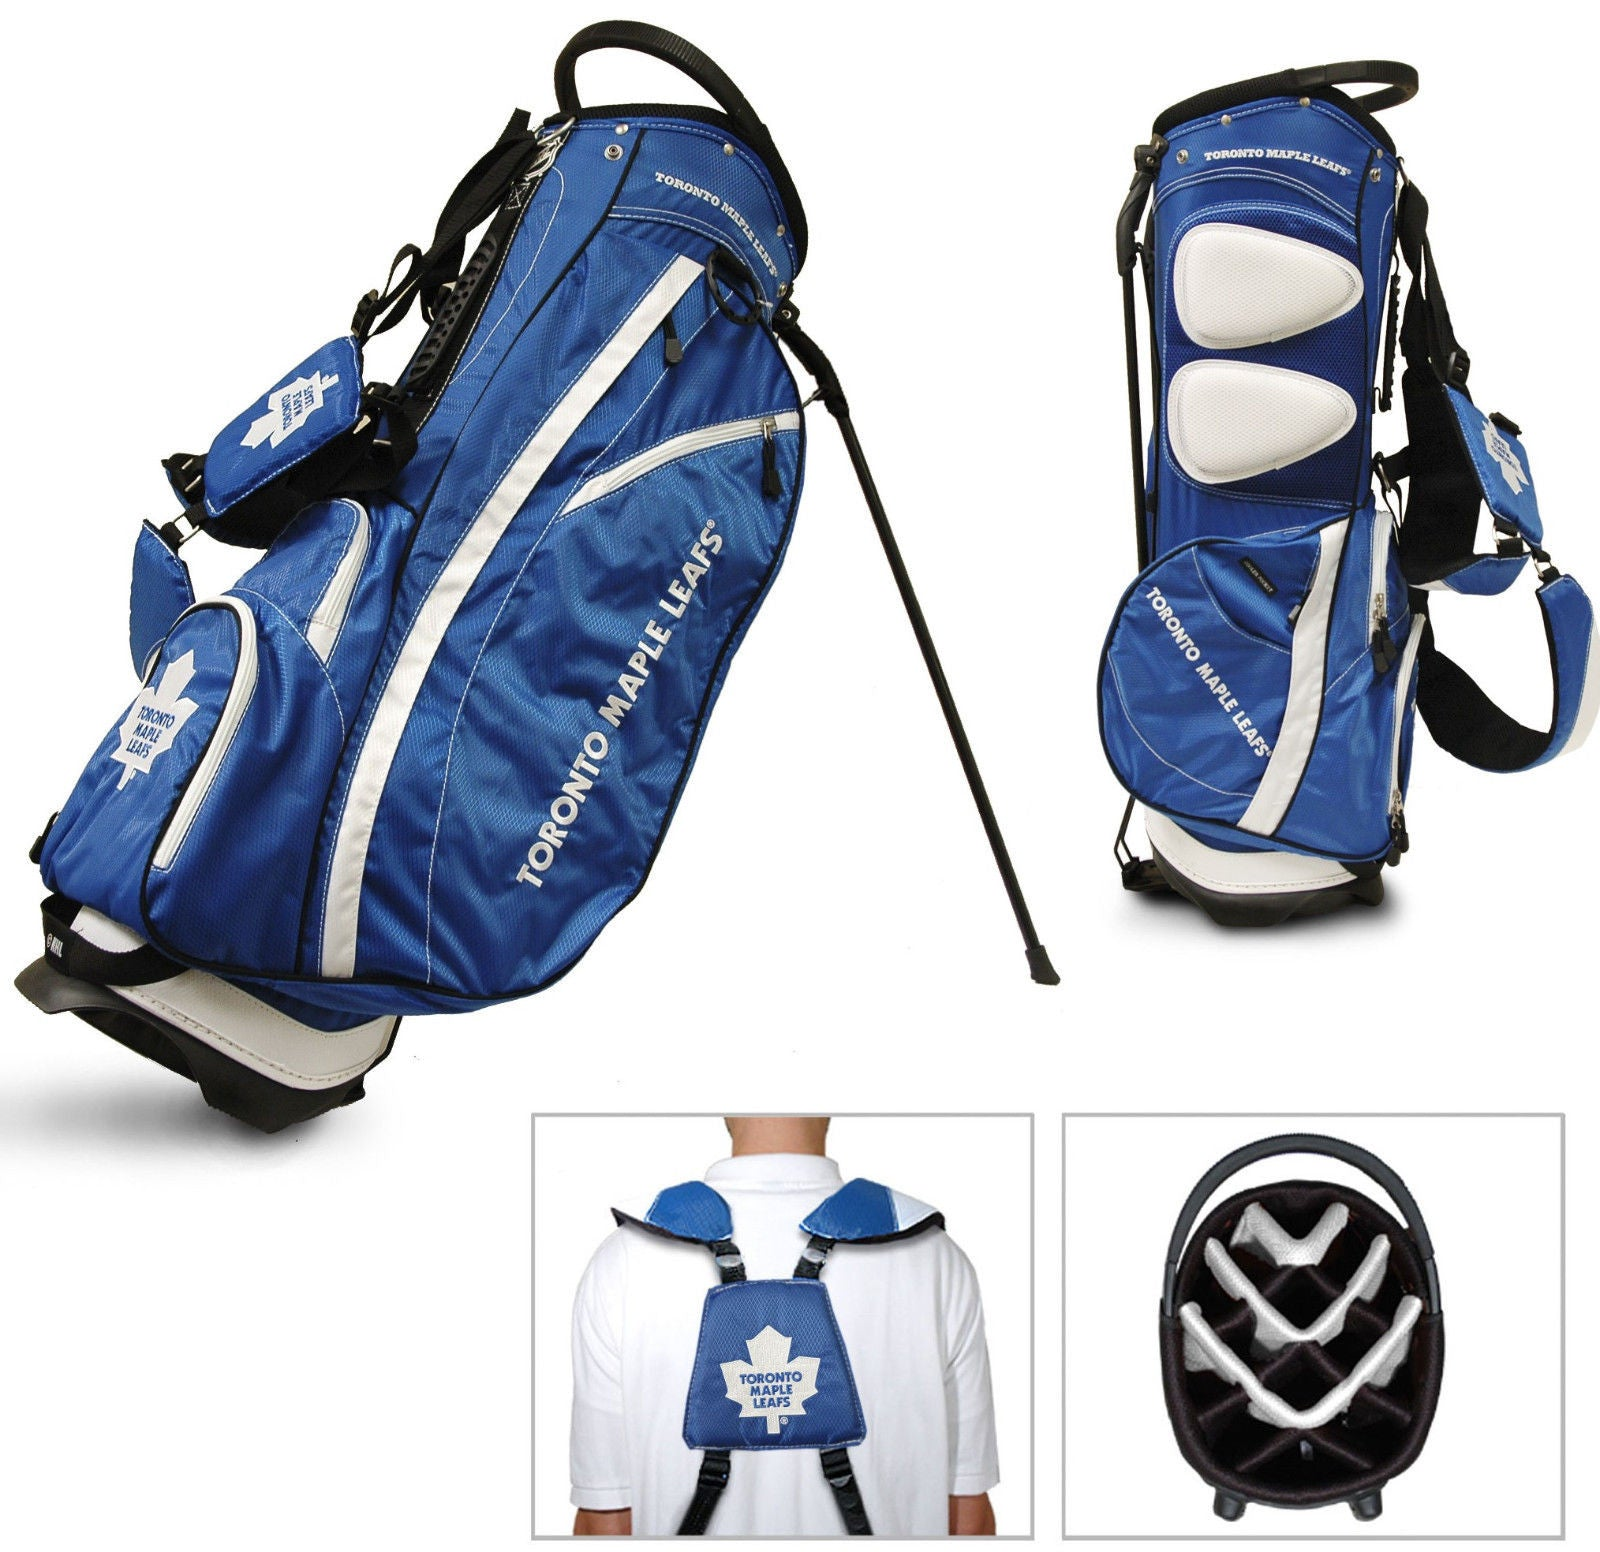 NHL Toronto Maple Leafs Fairway Golf Stand Bag FREE SHIPPING!